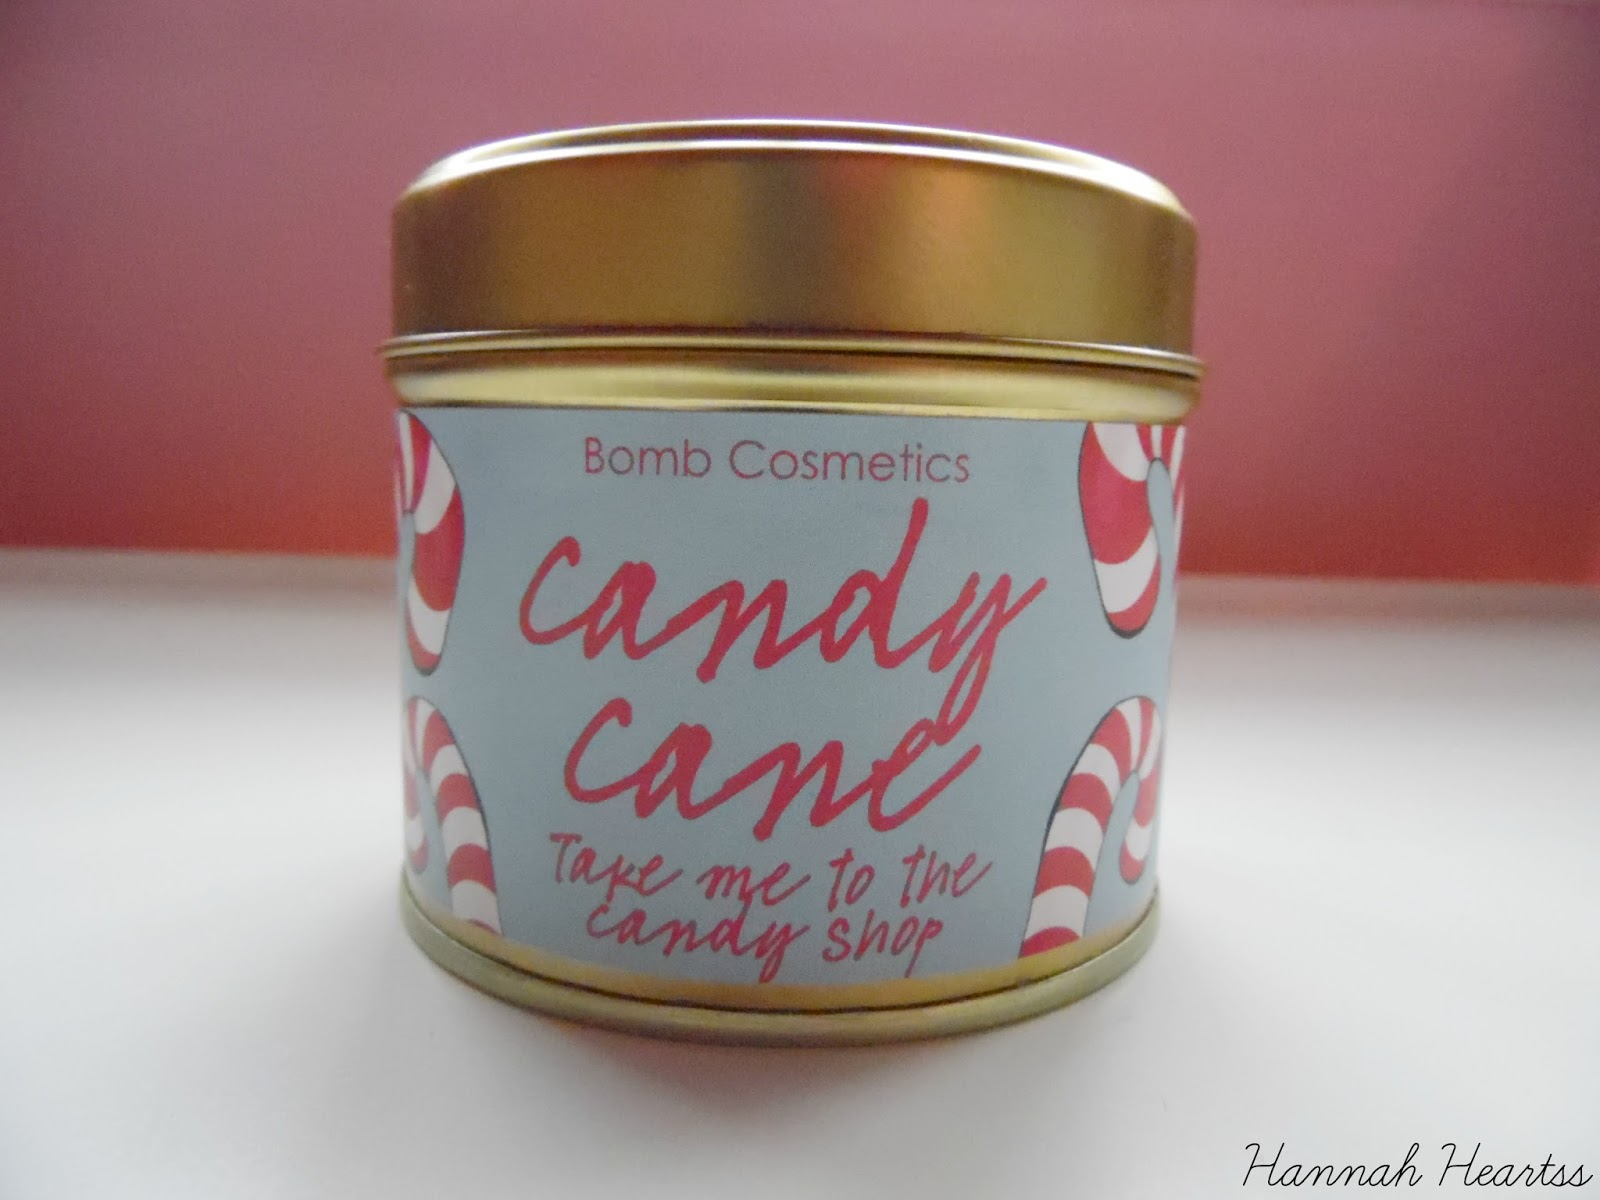 Bomb Cosmetics Candy Cane Candle